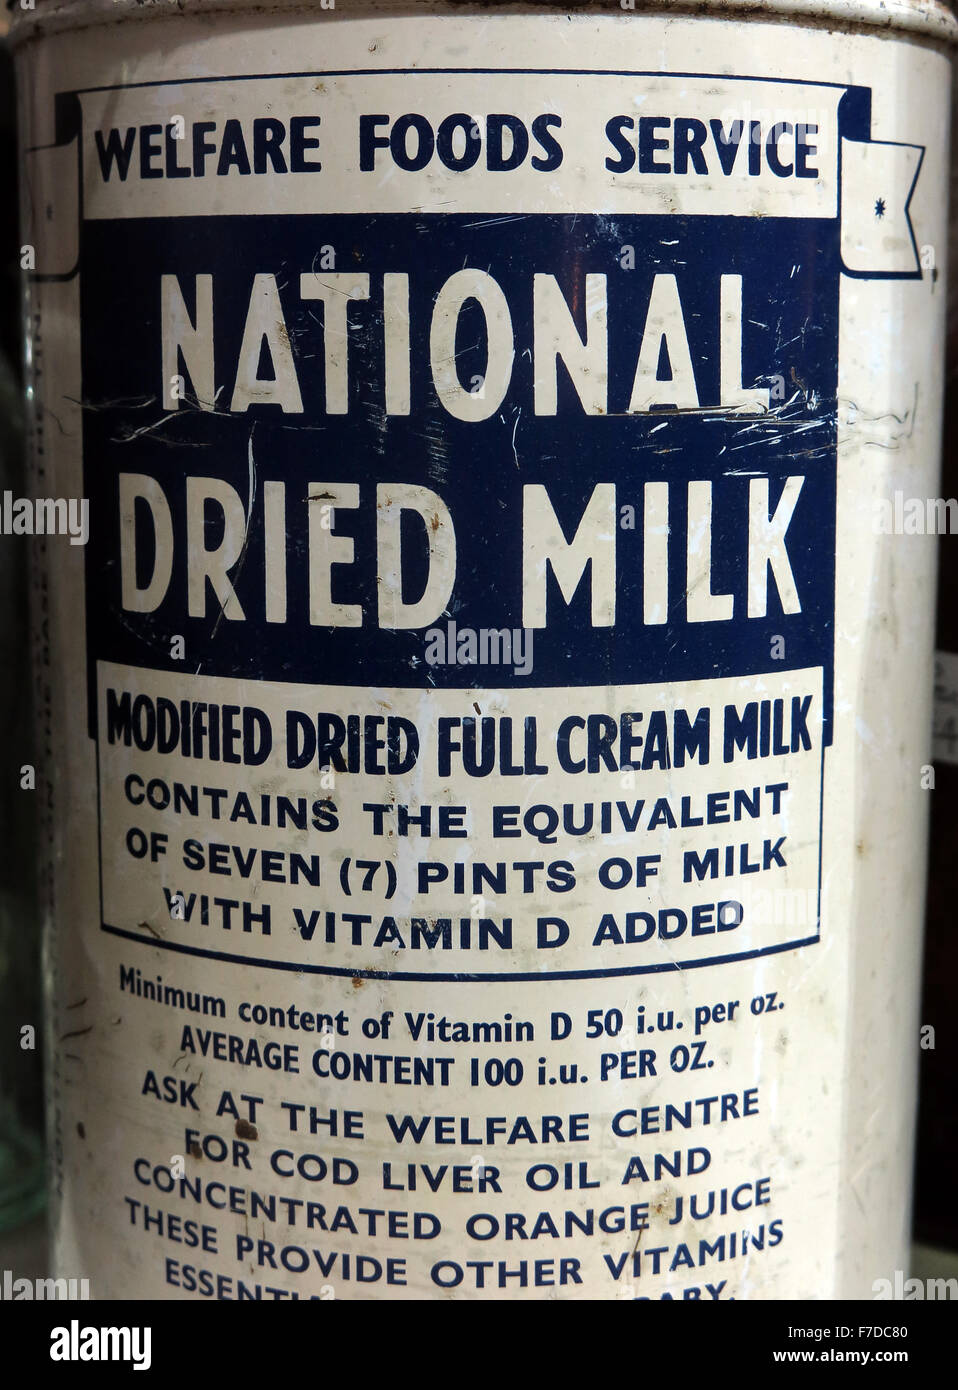 World,war,II,roller-dried,roller,dried,dry,powdered,20th,century,britain,british,century,white,blue,container,design,driedmilk,drinking,milky,object,packaging,vitamin,vitaminD,ration,rationingMother,baby,child,babymilk,breast-feeding,breast,breastmilk,scheme,National,health,service,Baby Milk,GoTonySmith,SPD,Coupon,Coupons,Voucher,Food,bank,foodbank,housewife,housewives,full,cream,seven,pint,welfare,centre,England,English,Scotland,Scottish,Buy Pictures of,Buy Images Of,Welfare Centre